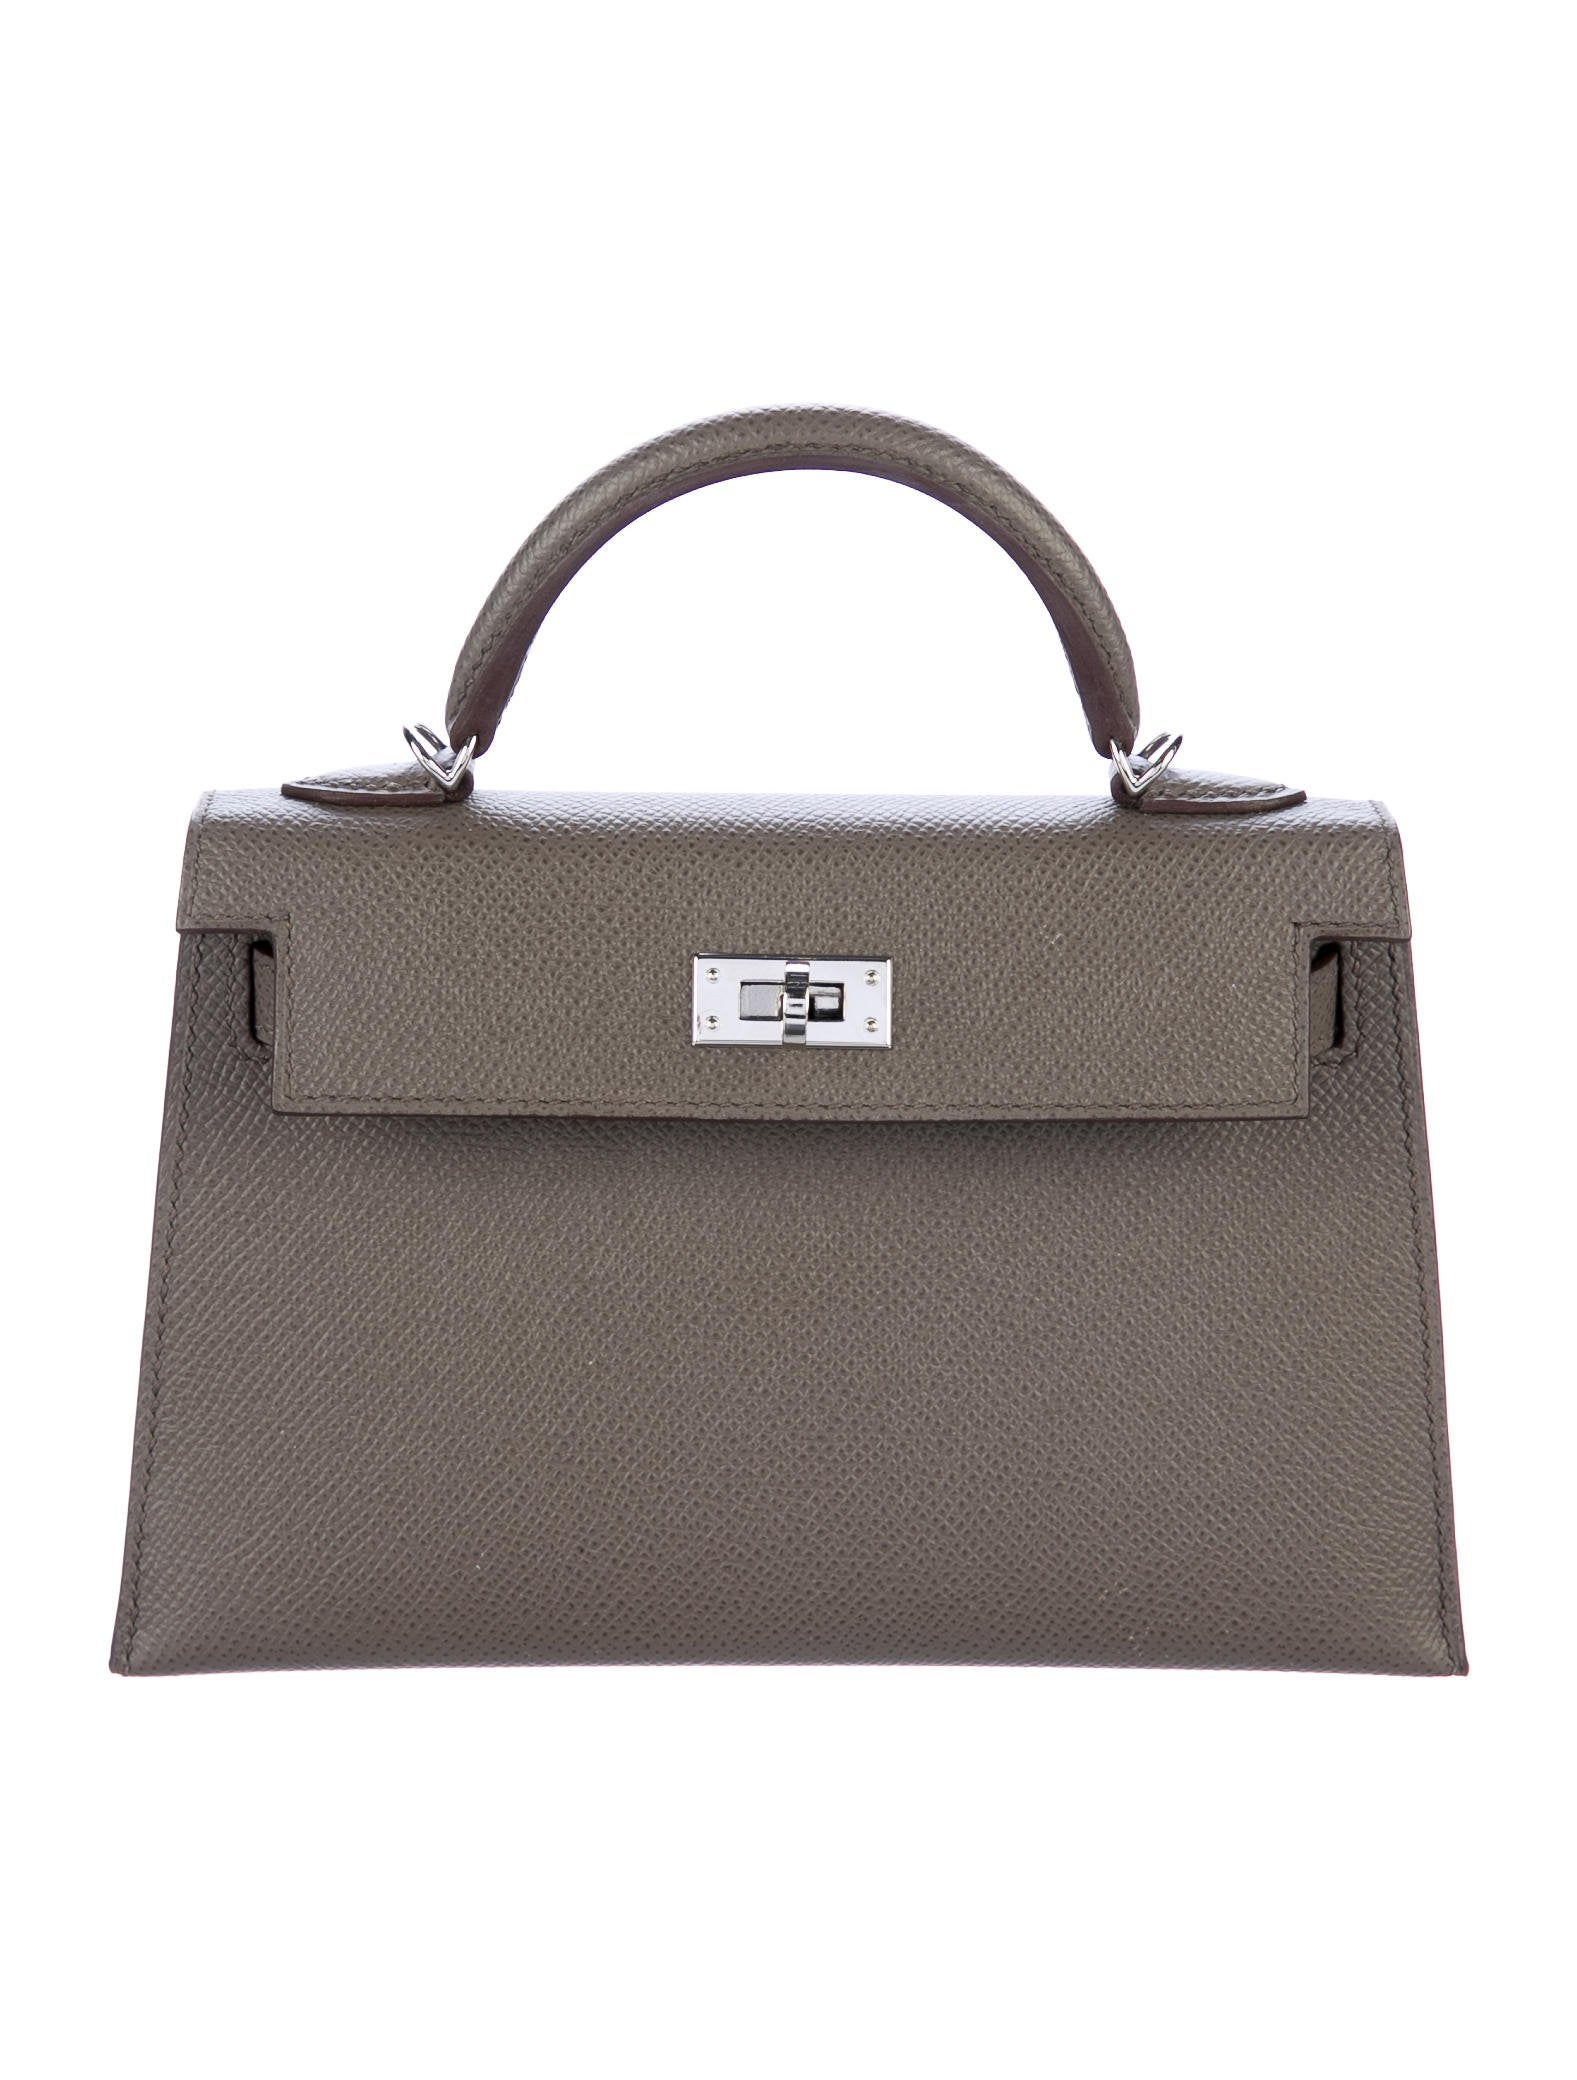 2017 Mini Kelly Sellier II 20 by Hermes, available on therealreal.com for $18000 Kourtney Kardashian Bags Exact Product